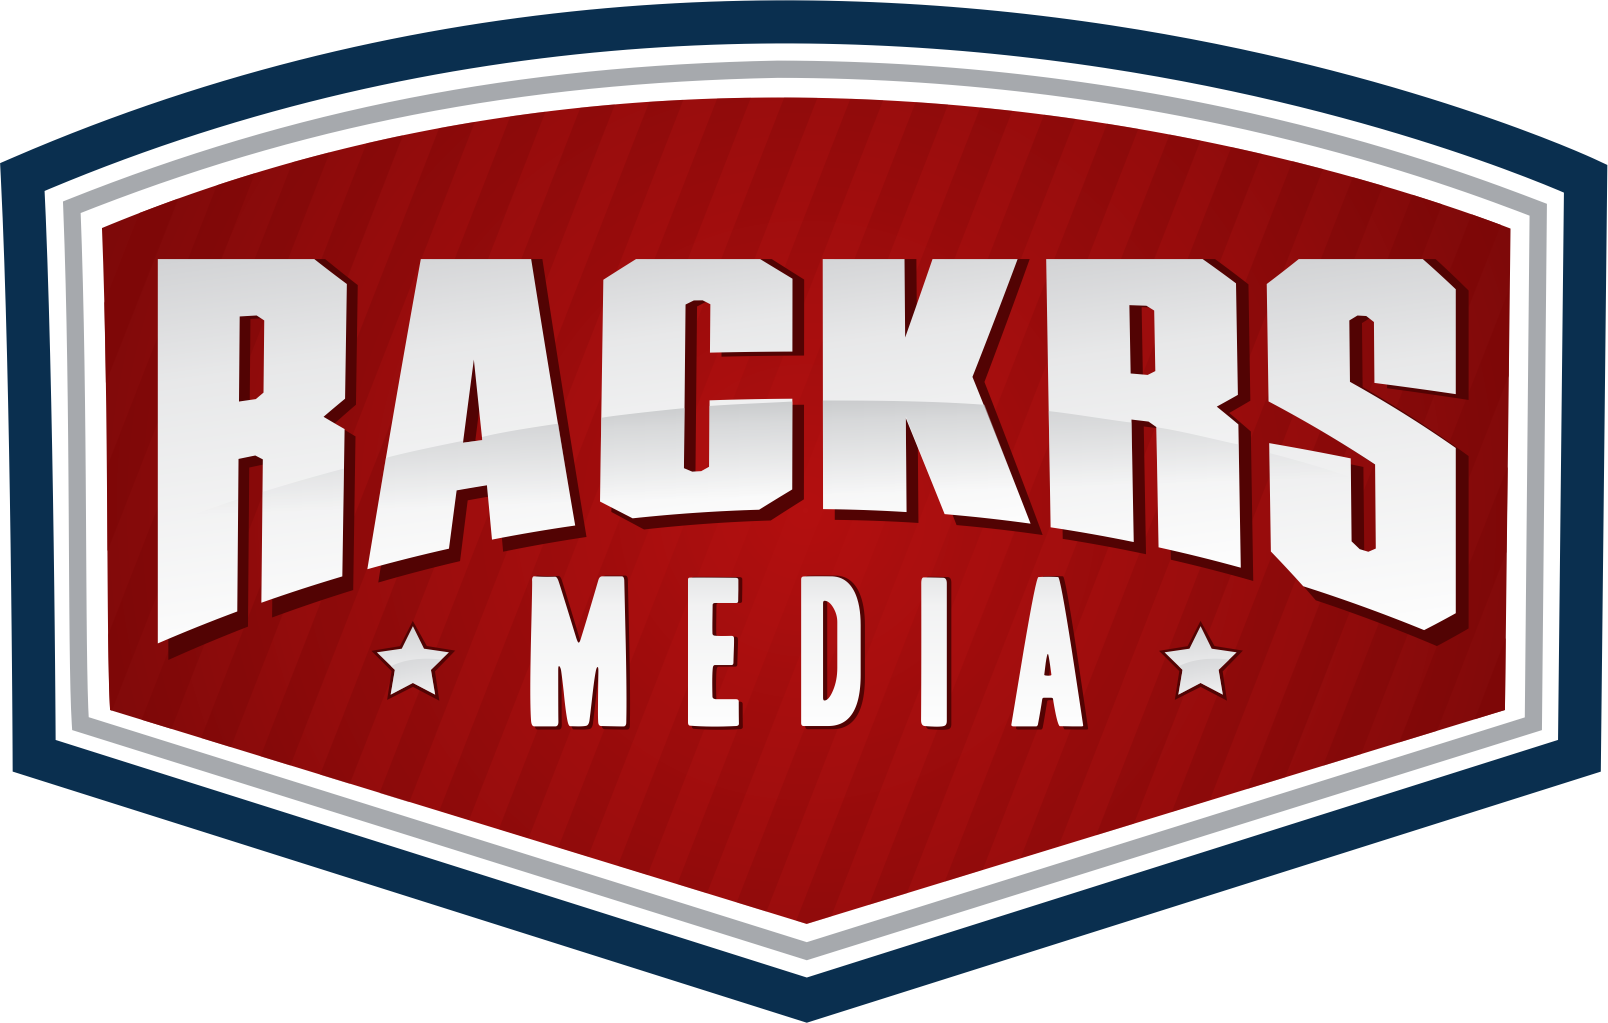 Rackrs Media, LLC - Video Production & Content Creation Company in San Antonio